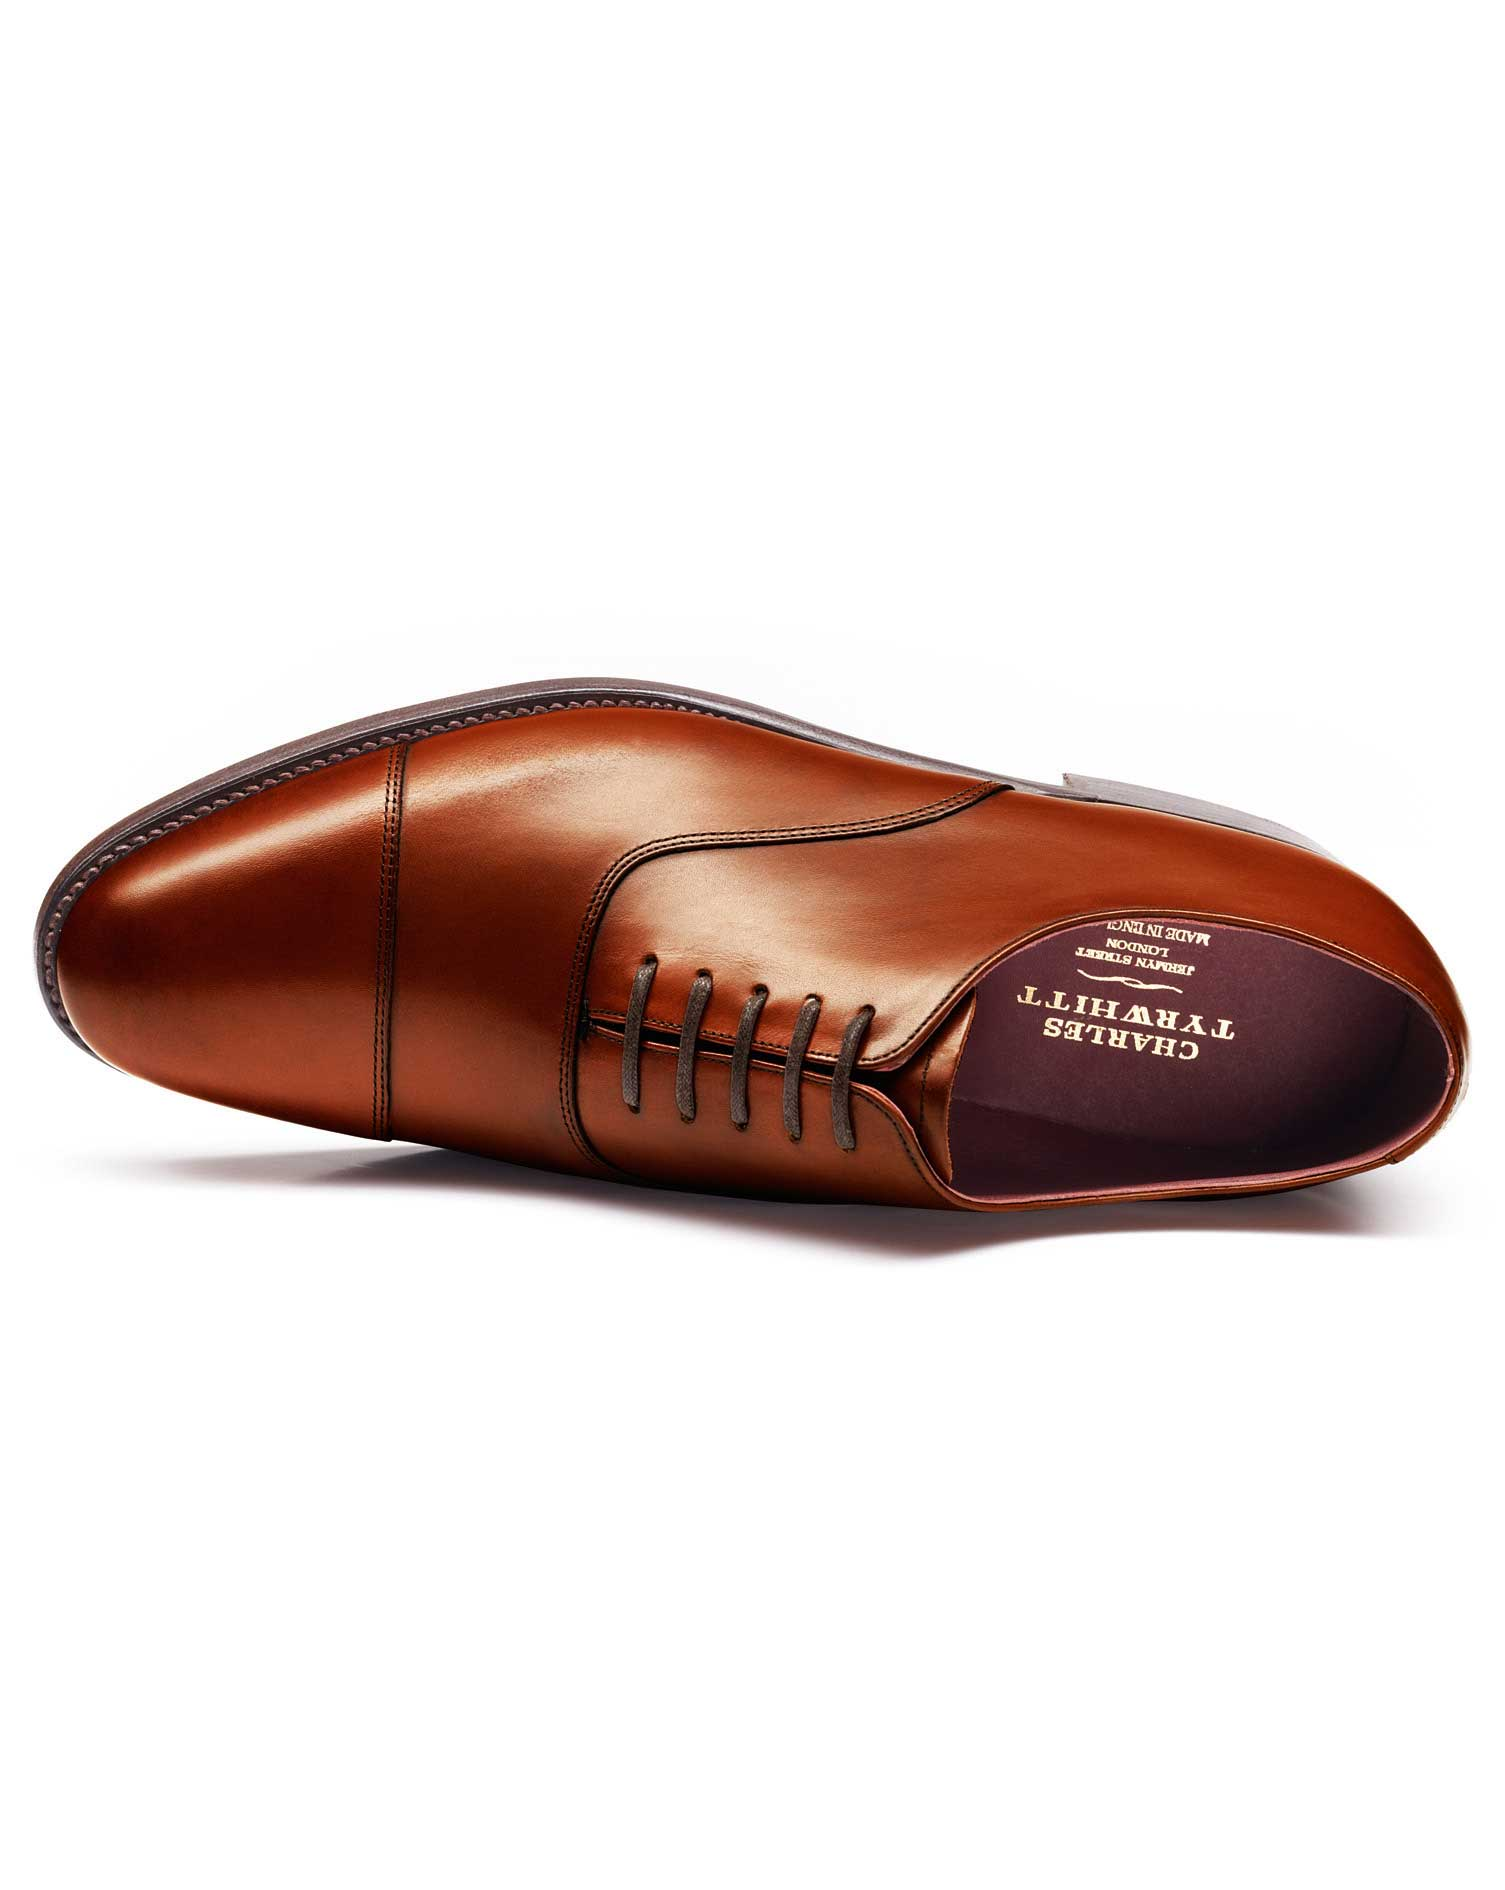 Brown Heathcote Calf Leather Toe Cap Oxford Shoes Size 7.5 R by Charles Tyrwhitt